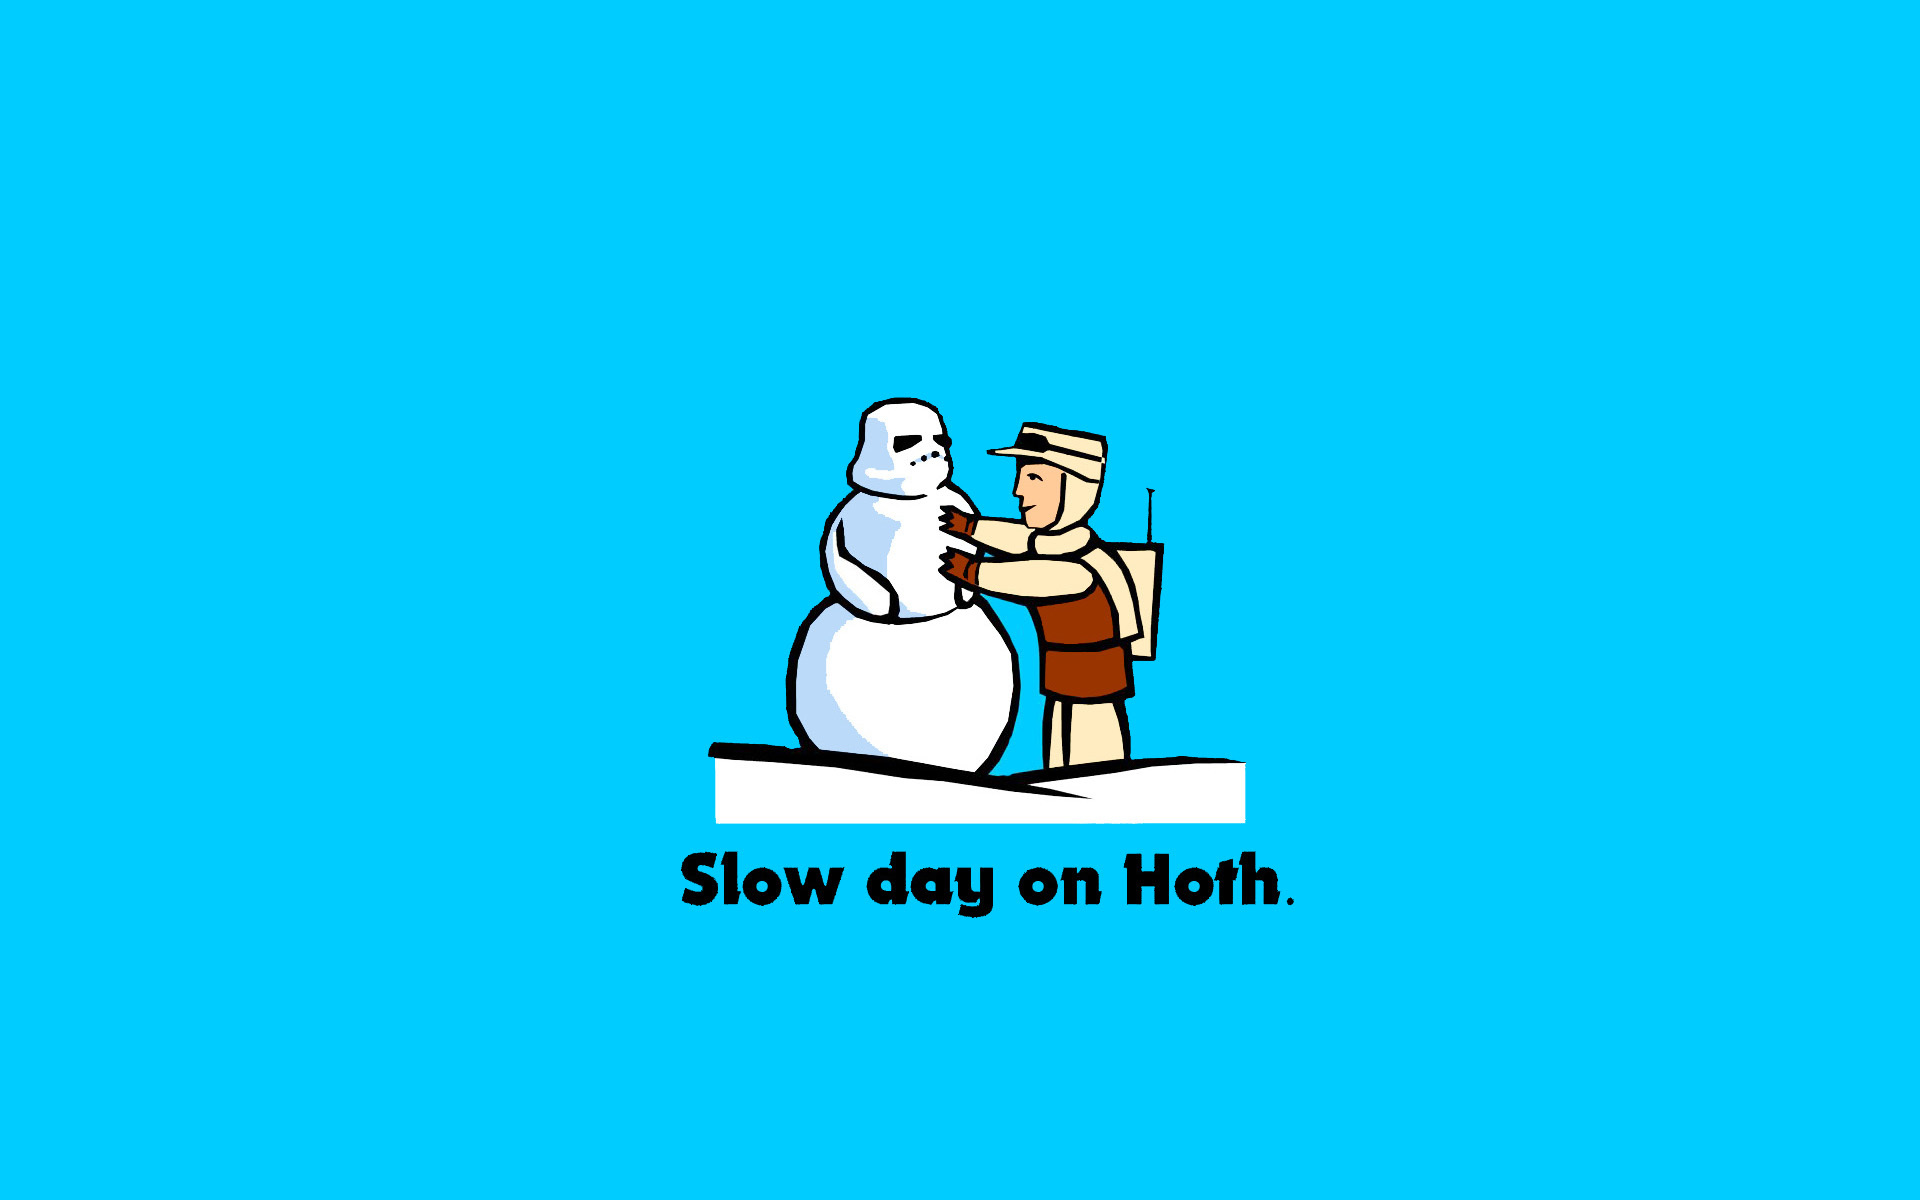 star wars slow Hoth HD Wallpaper